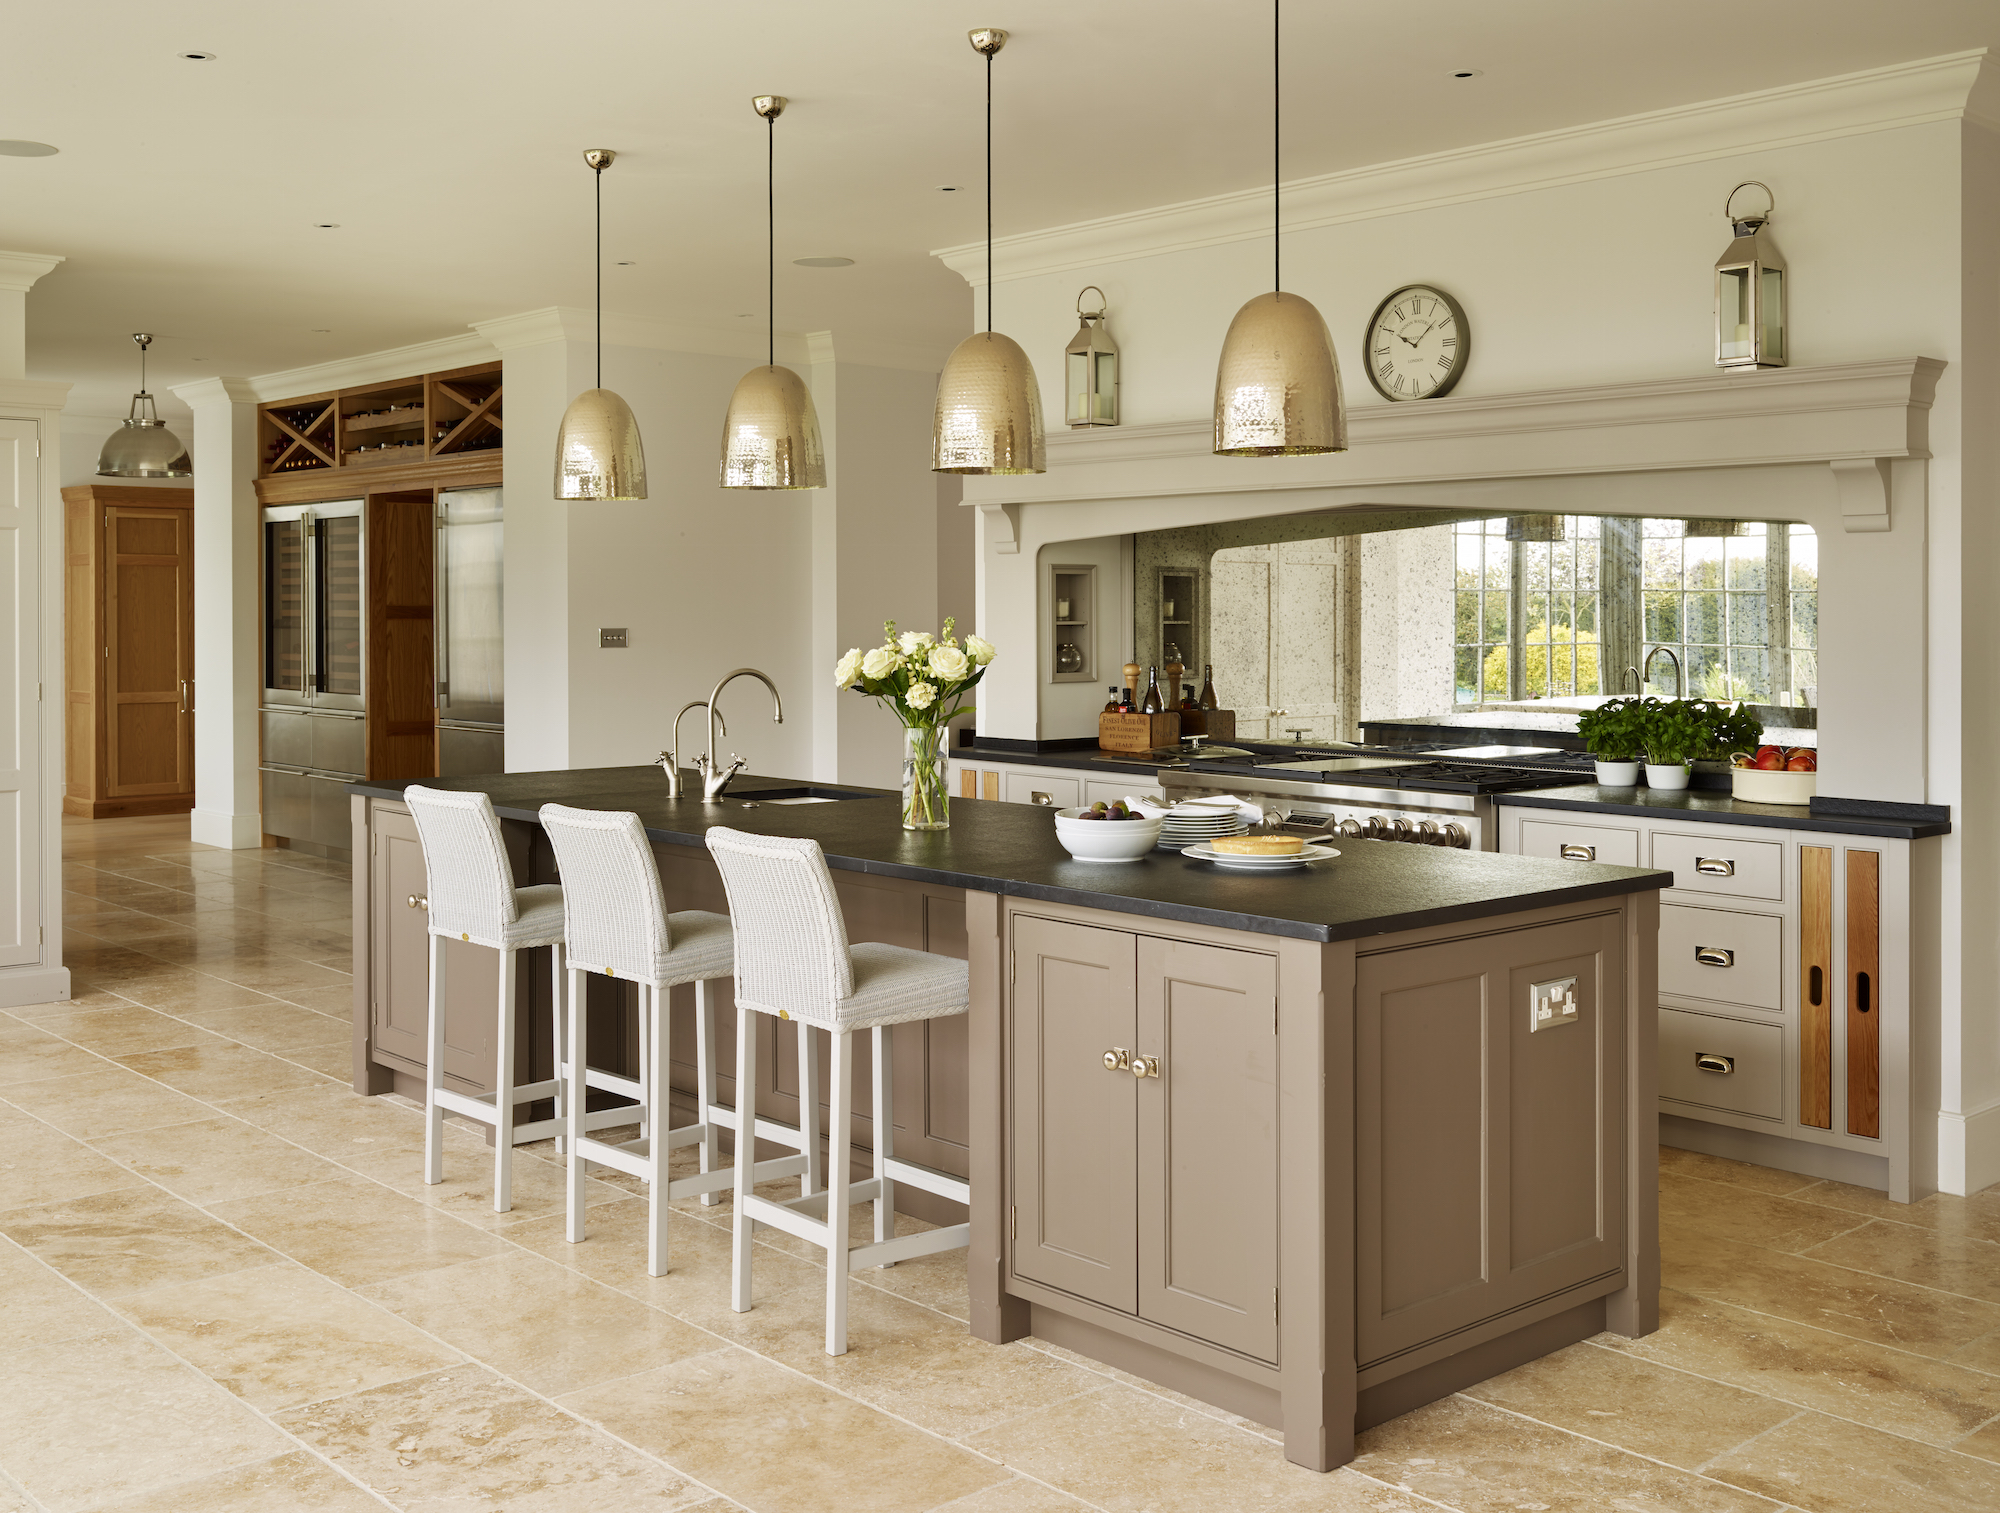 Chic kitchen design ideas kitchen designs ideas